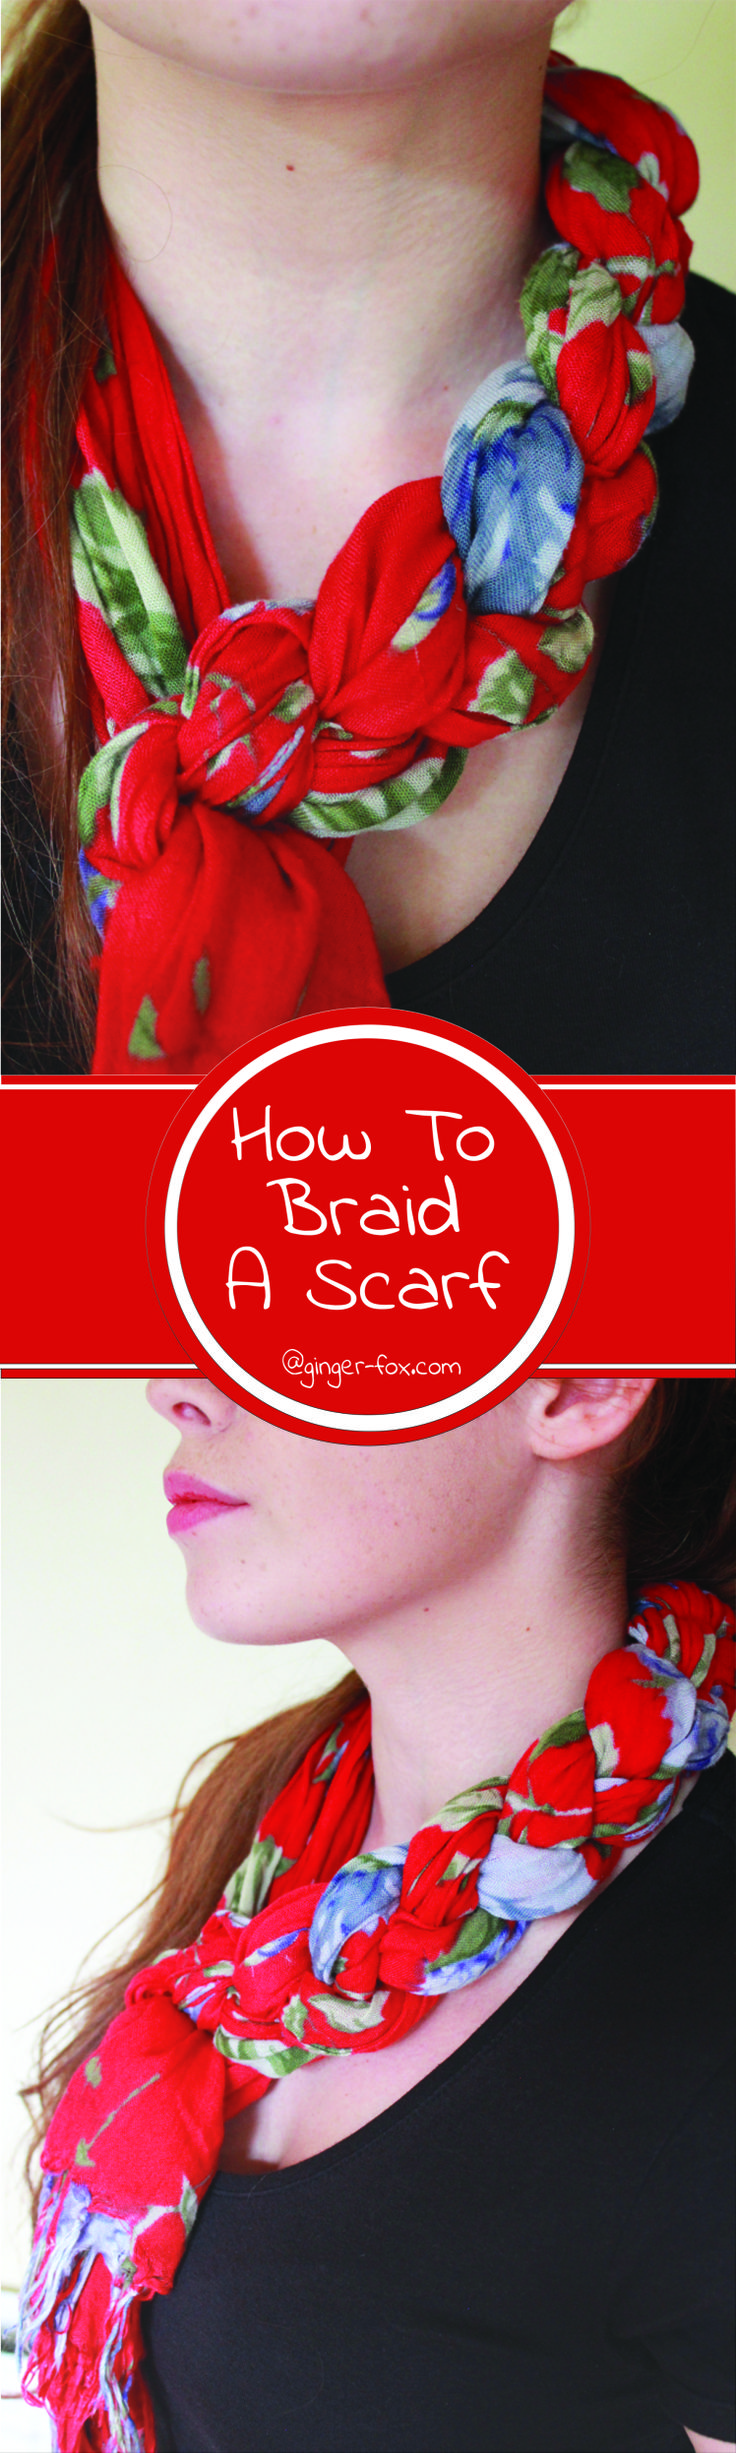 How to Braid a Scarf Step by step Tutorial, Autumn/ Fall Fashion 2016 #fashion #autumn #scarf                                                                                                                                                                                 More